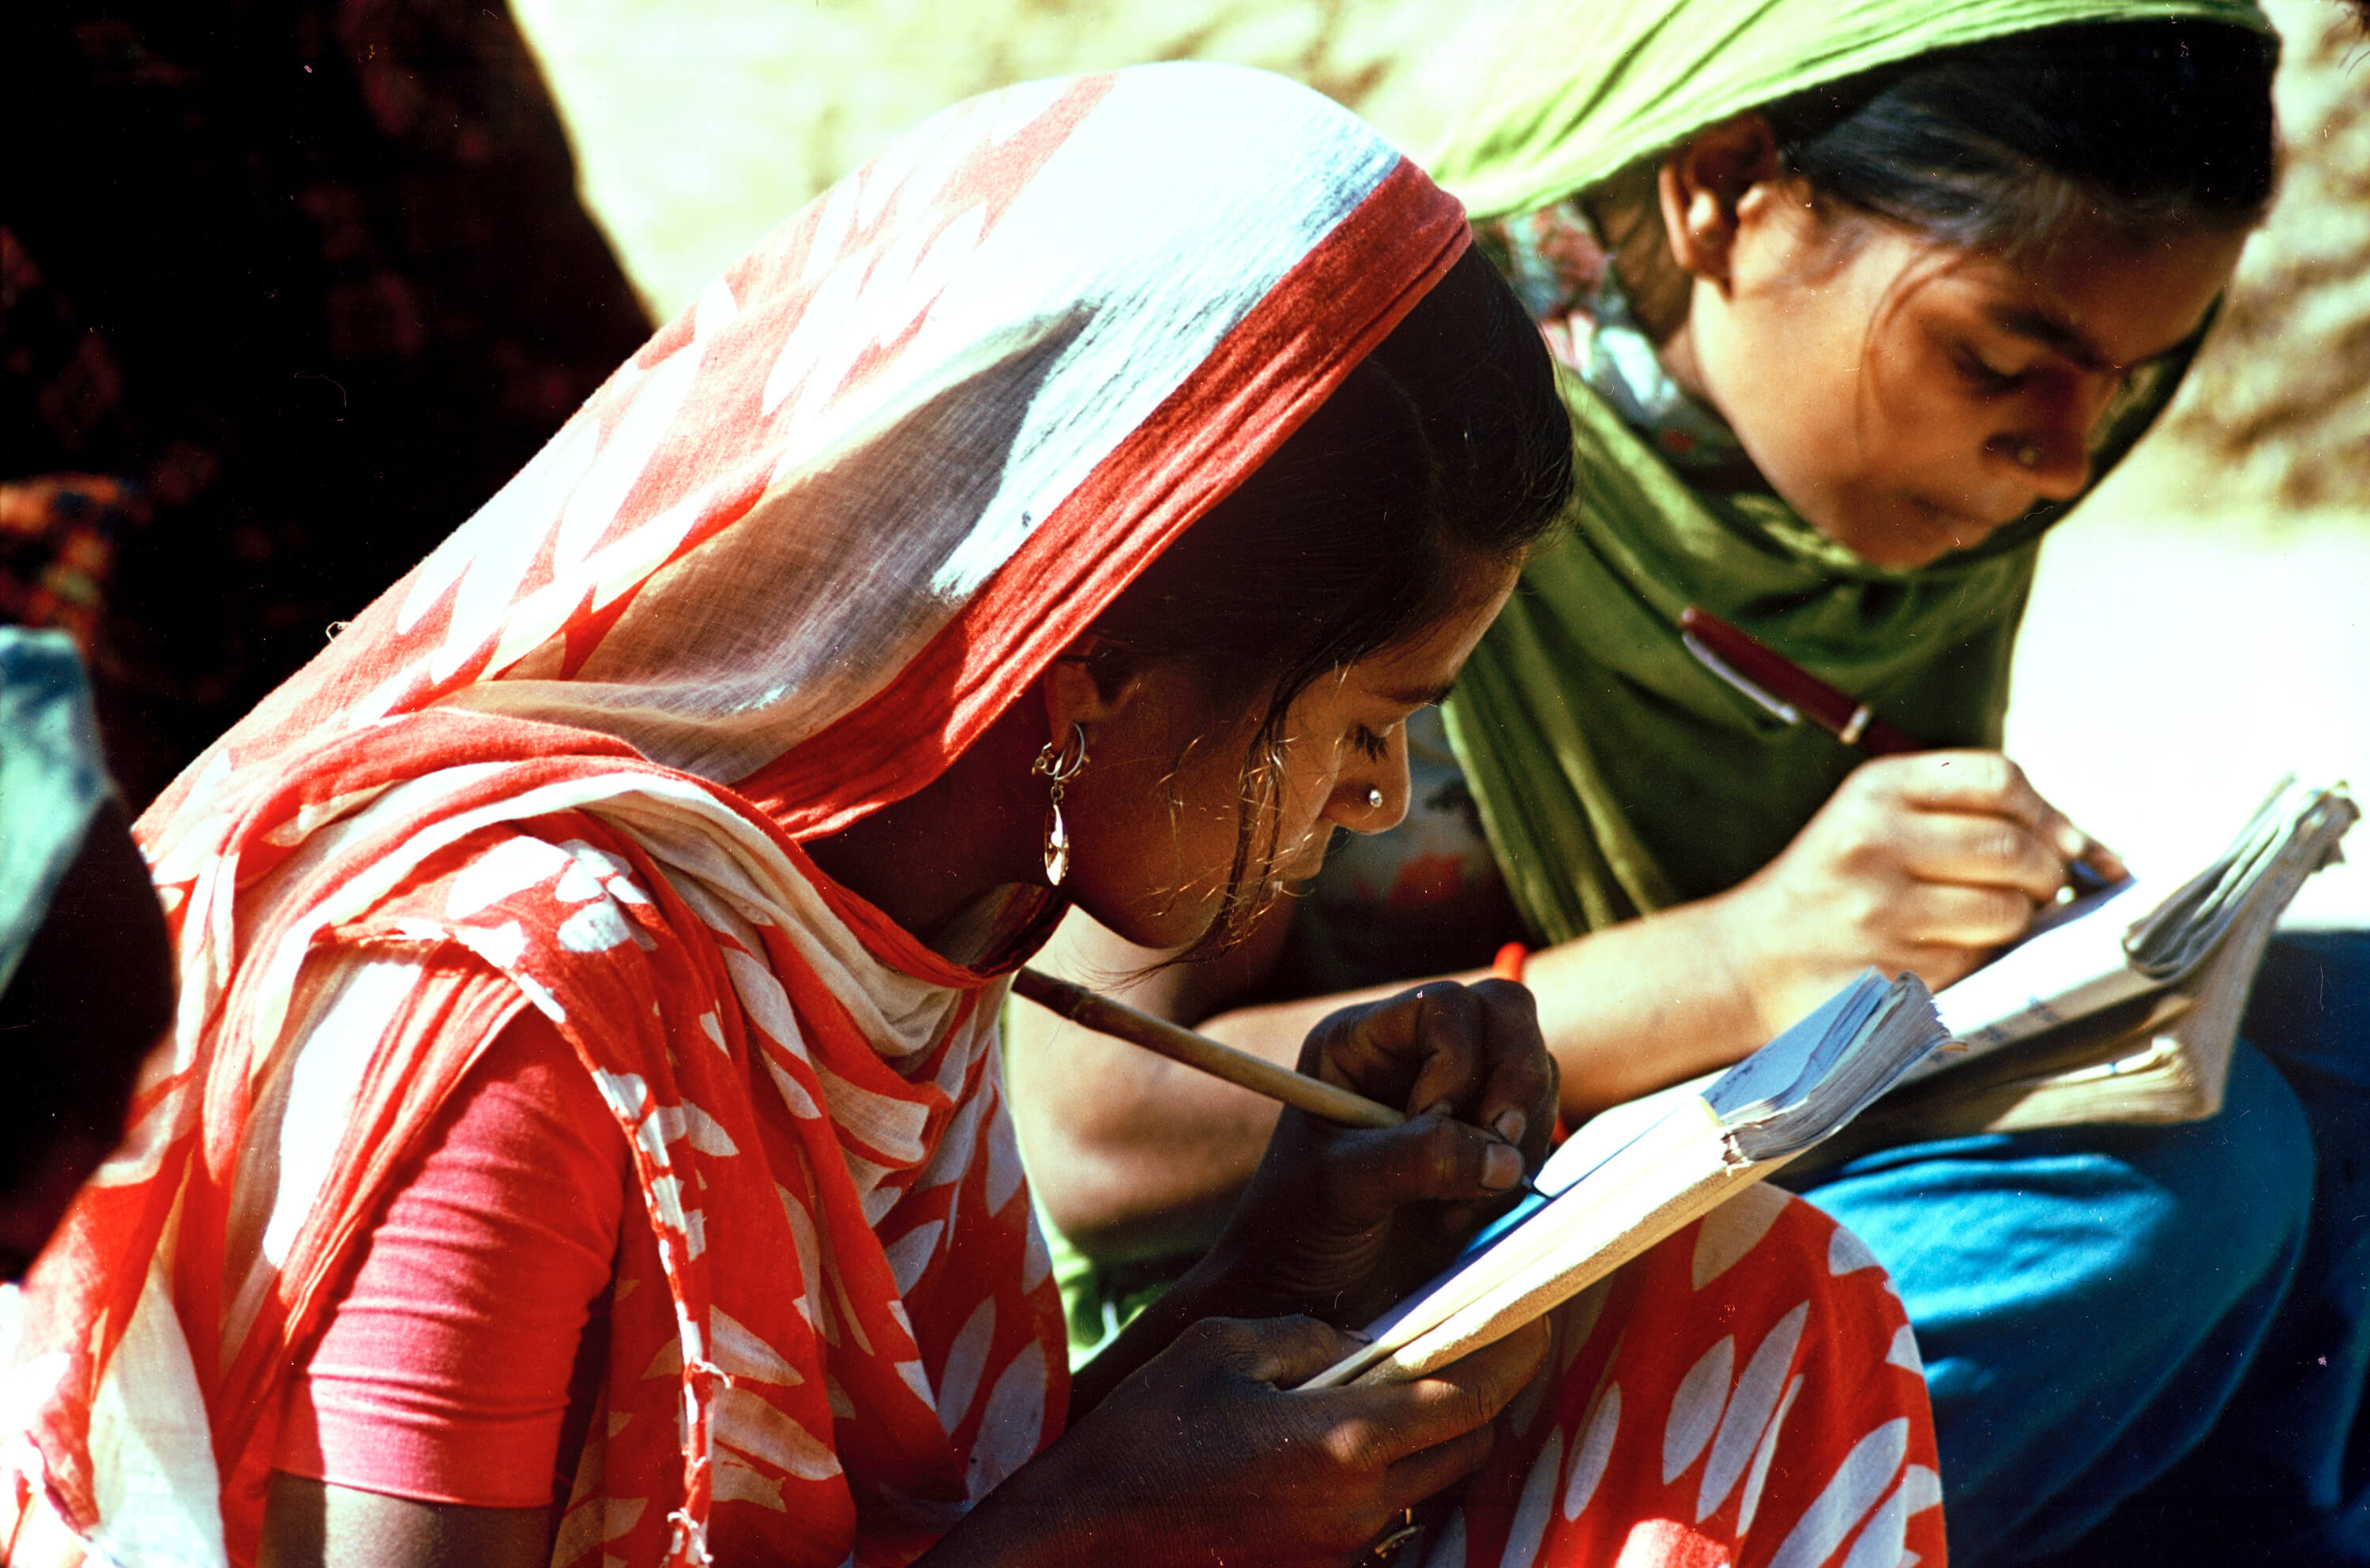 Comparative Perspectives on the Right to Education for Minorities and Disadvantaged Groups